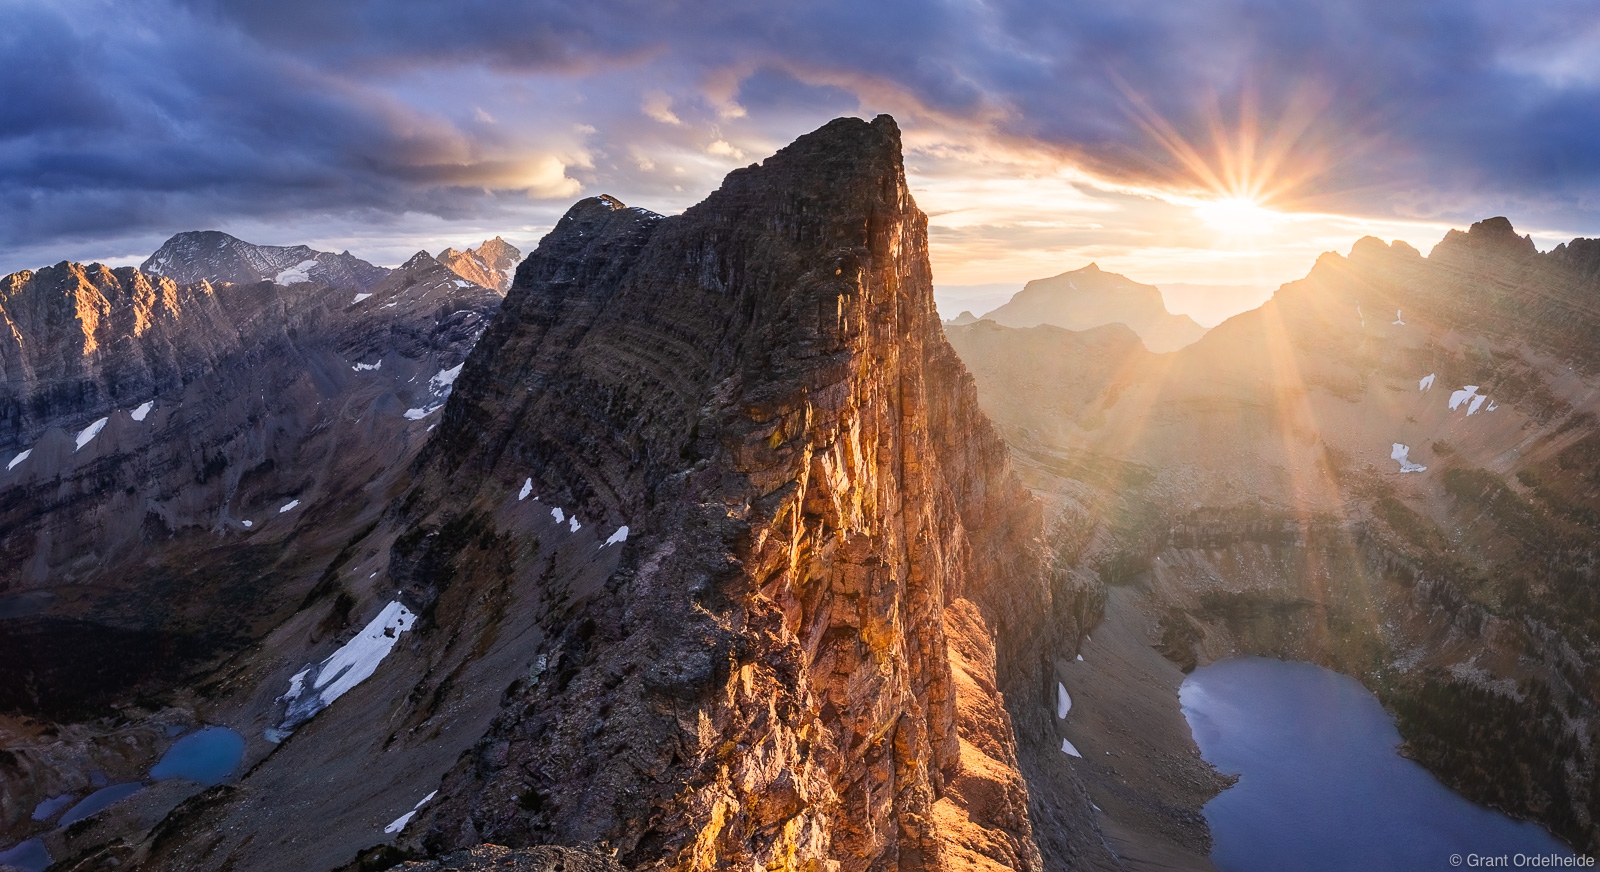 A stormy autumn sunset over the impressive Dragon's Tail formation in Glacier National Park.